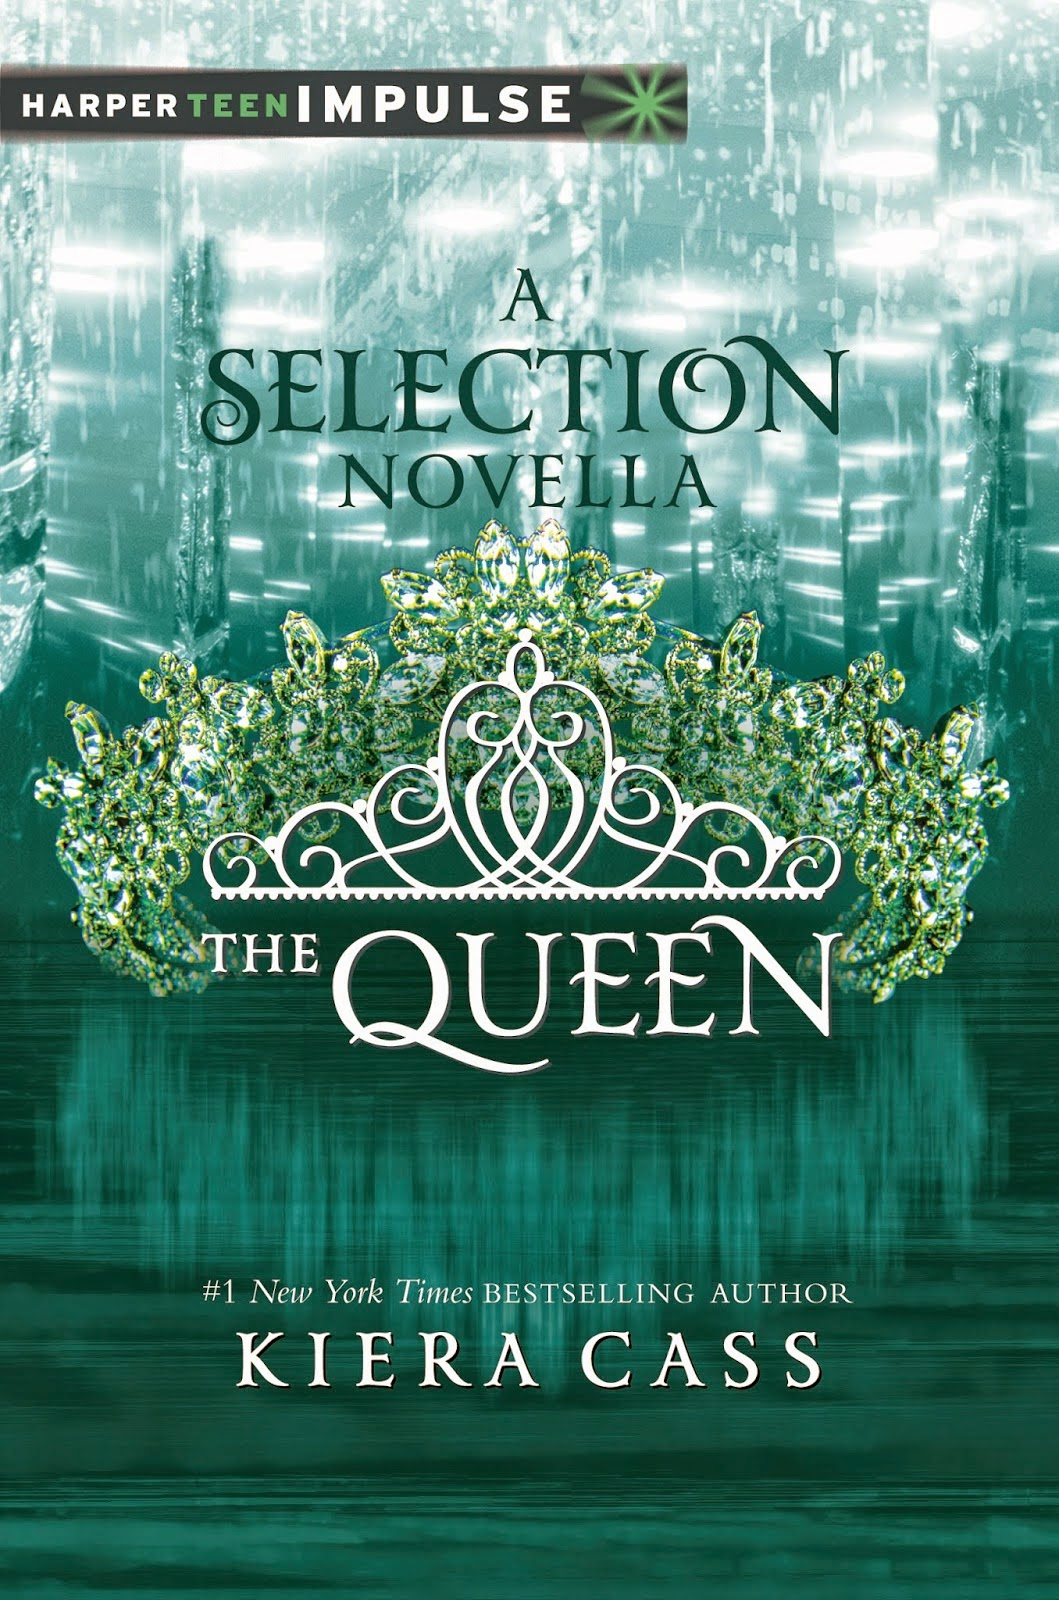 the selection series by kiera cass novella the queen cover hd large